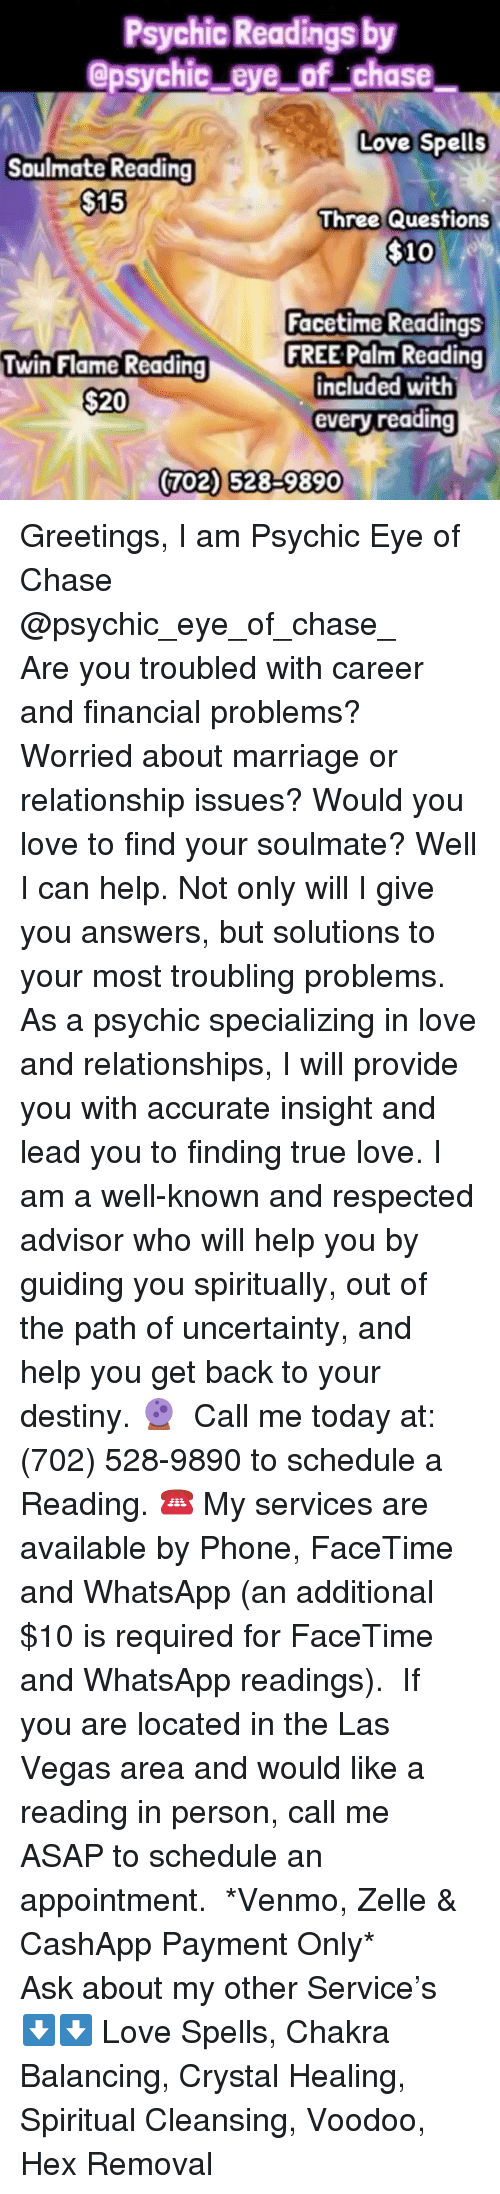 Destiny, Facetime, and Love: Psychic Readings by  @psychic_eye_of chase  Love Spells  Soulmate Reading  $15  Three Questions  $10  Facetime Readings  FREE Palm Reading  included with  every reading  Twin Flame Readin  $20  702) 528-9890 Greetings, I am Psychic Eye of Chase @psychic_eye_of_chase_   Are you troubled with career and financial problems? Worried about marriage or relationship issues? Would you love to find your soulmate? Well I can help. Not only will I give you answers, but solutions to your most troubling problems. As a psychic specializing in love and relationships, I will provide you with accurate insight and lead you to finding true love. I am a well-known and respected advisor who will help you by guiding you spiritually, out of the path of uncertainty, and help you get back to your destiny.🔮  Call me today at: (702) 528-9890 to schedule a Reading. ☎️ My services are available by Phone, FaceTime and WhatsApp (an additional $10 is required for FaceTime and WhatsApp readings).  If you are located in the Las Vegas area and would like a reading in person, call me ASAP to schedule an appointment.  *Venmo, Zelle & CashApp Payment Only*  Ask about my other Service's ⬇️⬇️ Love Spells, Chakra Balancing, Crystal Healing, Spiritual Cleansing, Voodoo, Hex Removal